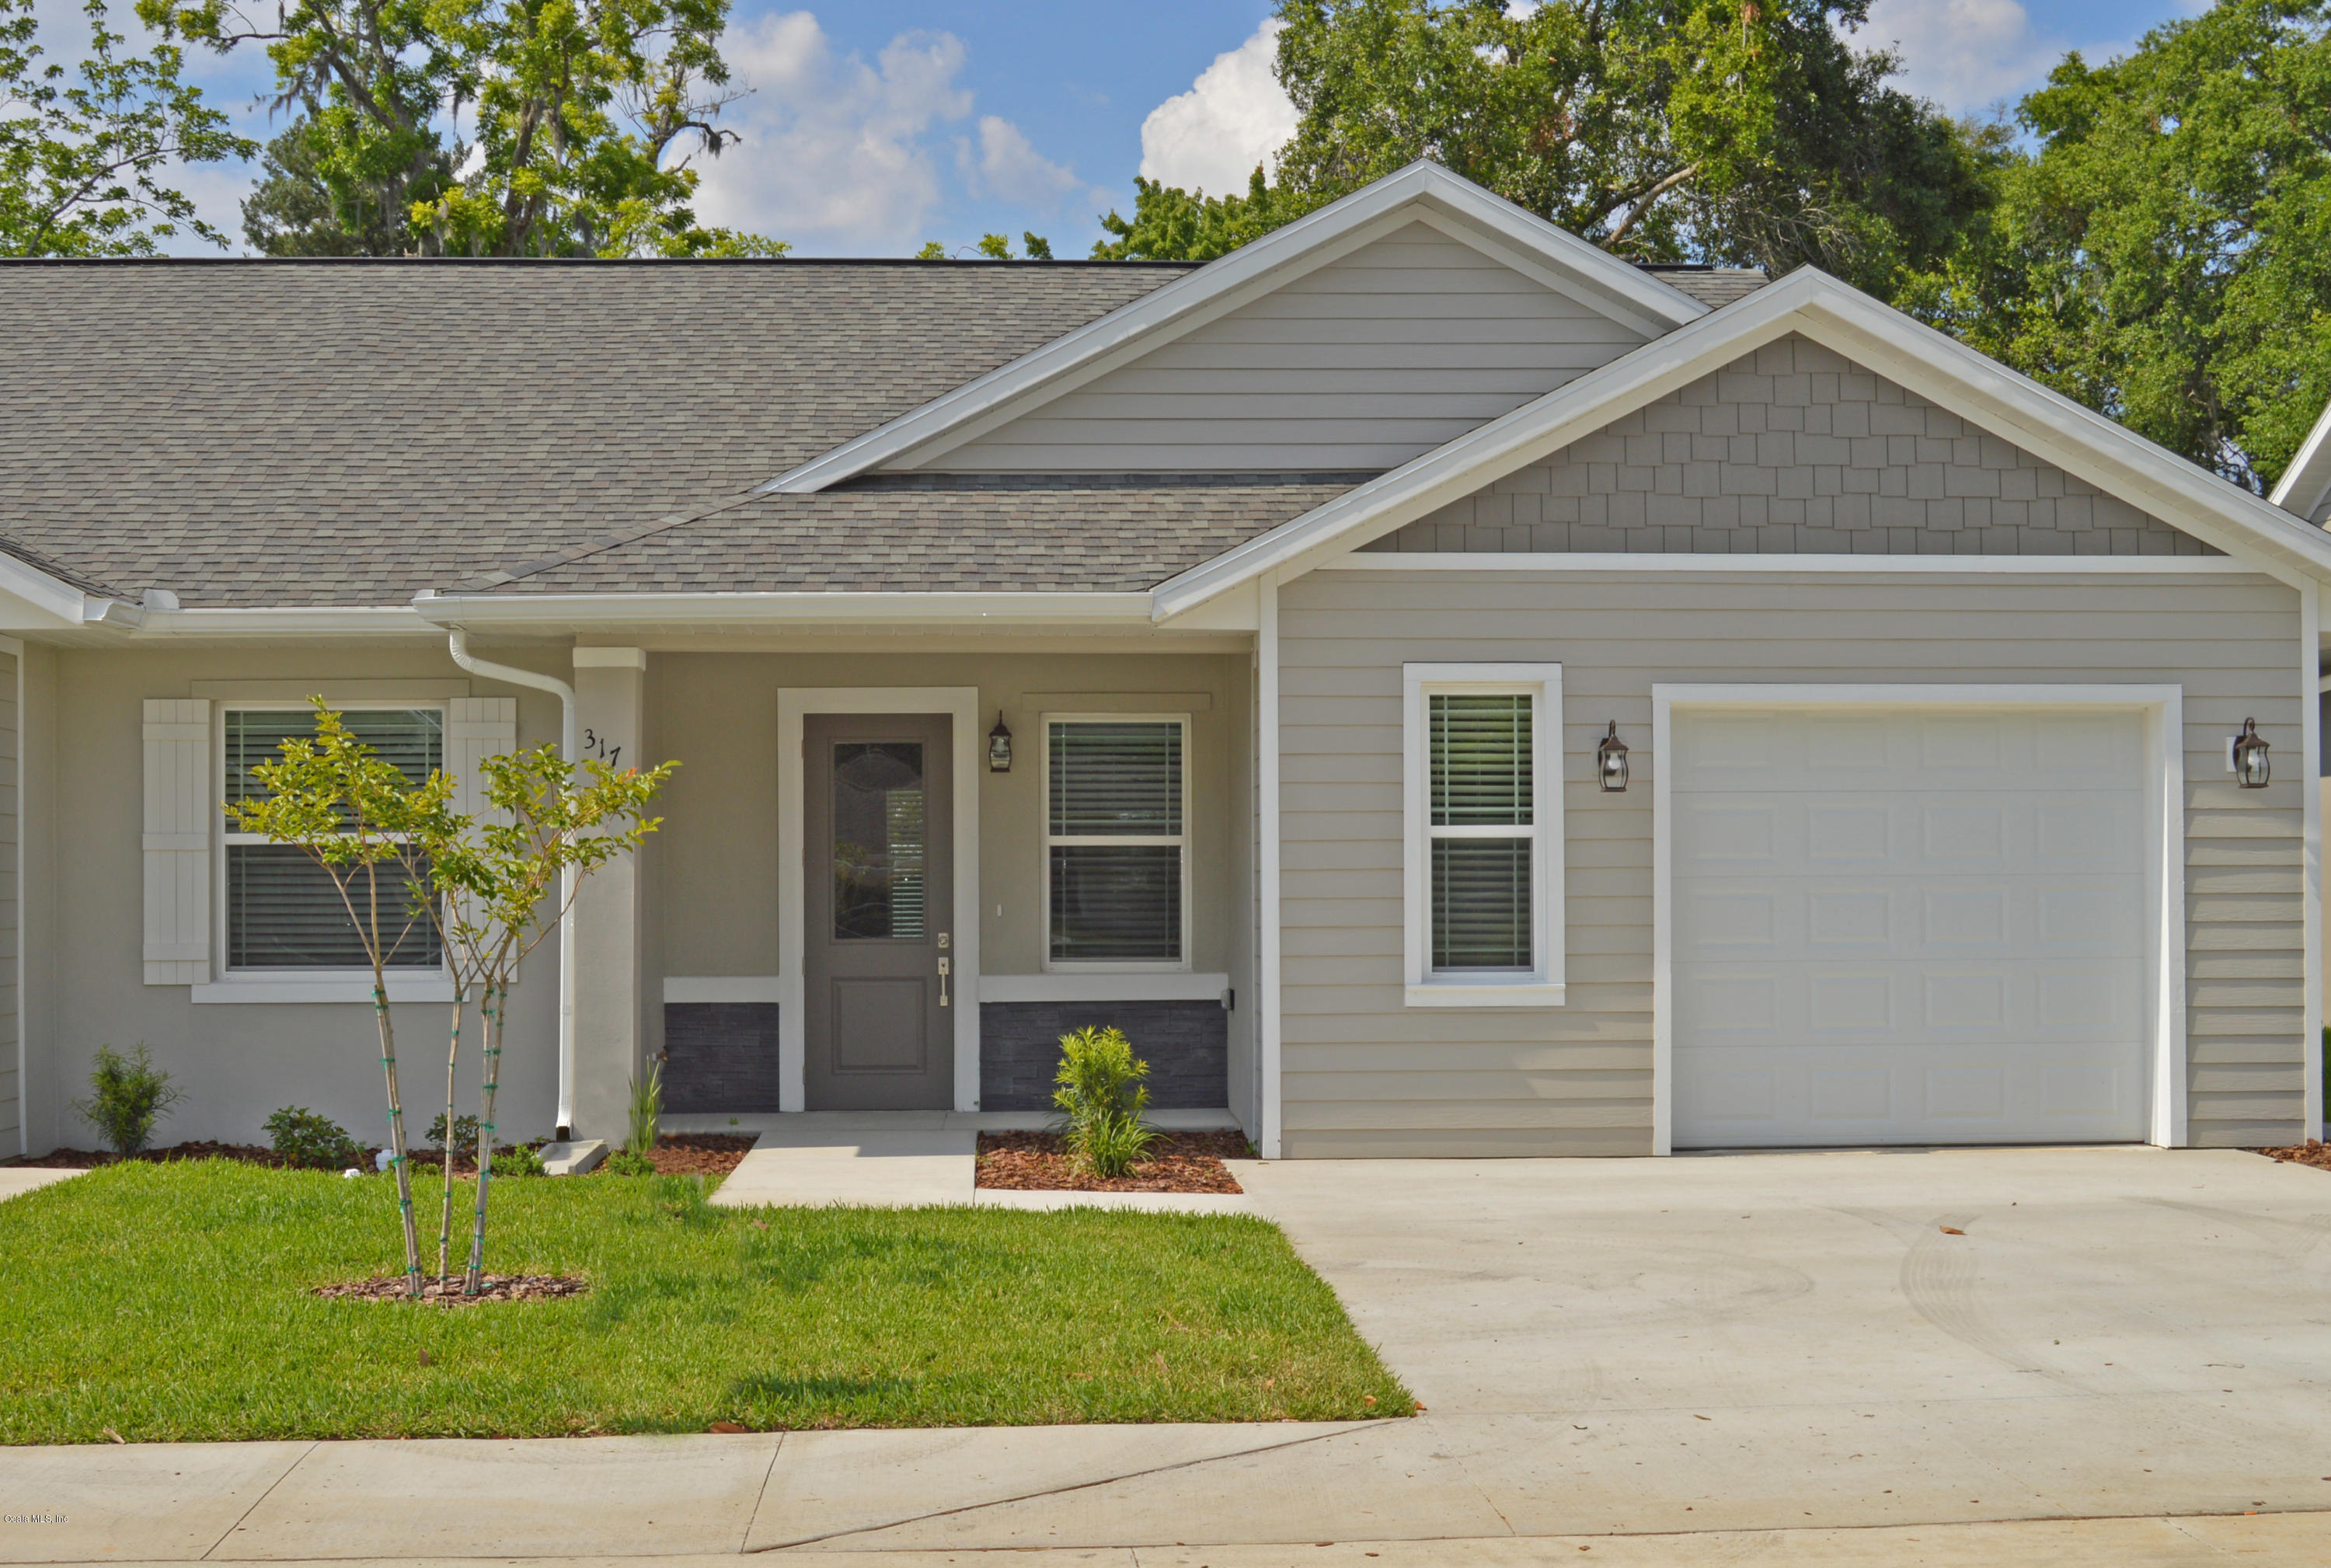 321 SE 10TH STREET, OCALA, FL 34471